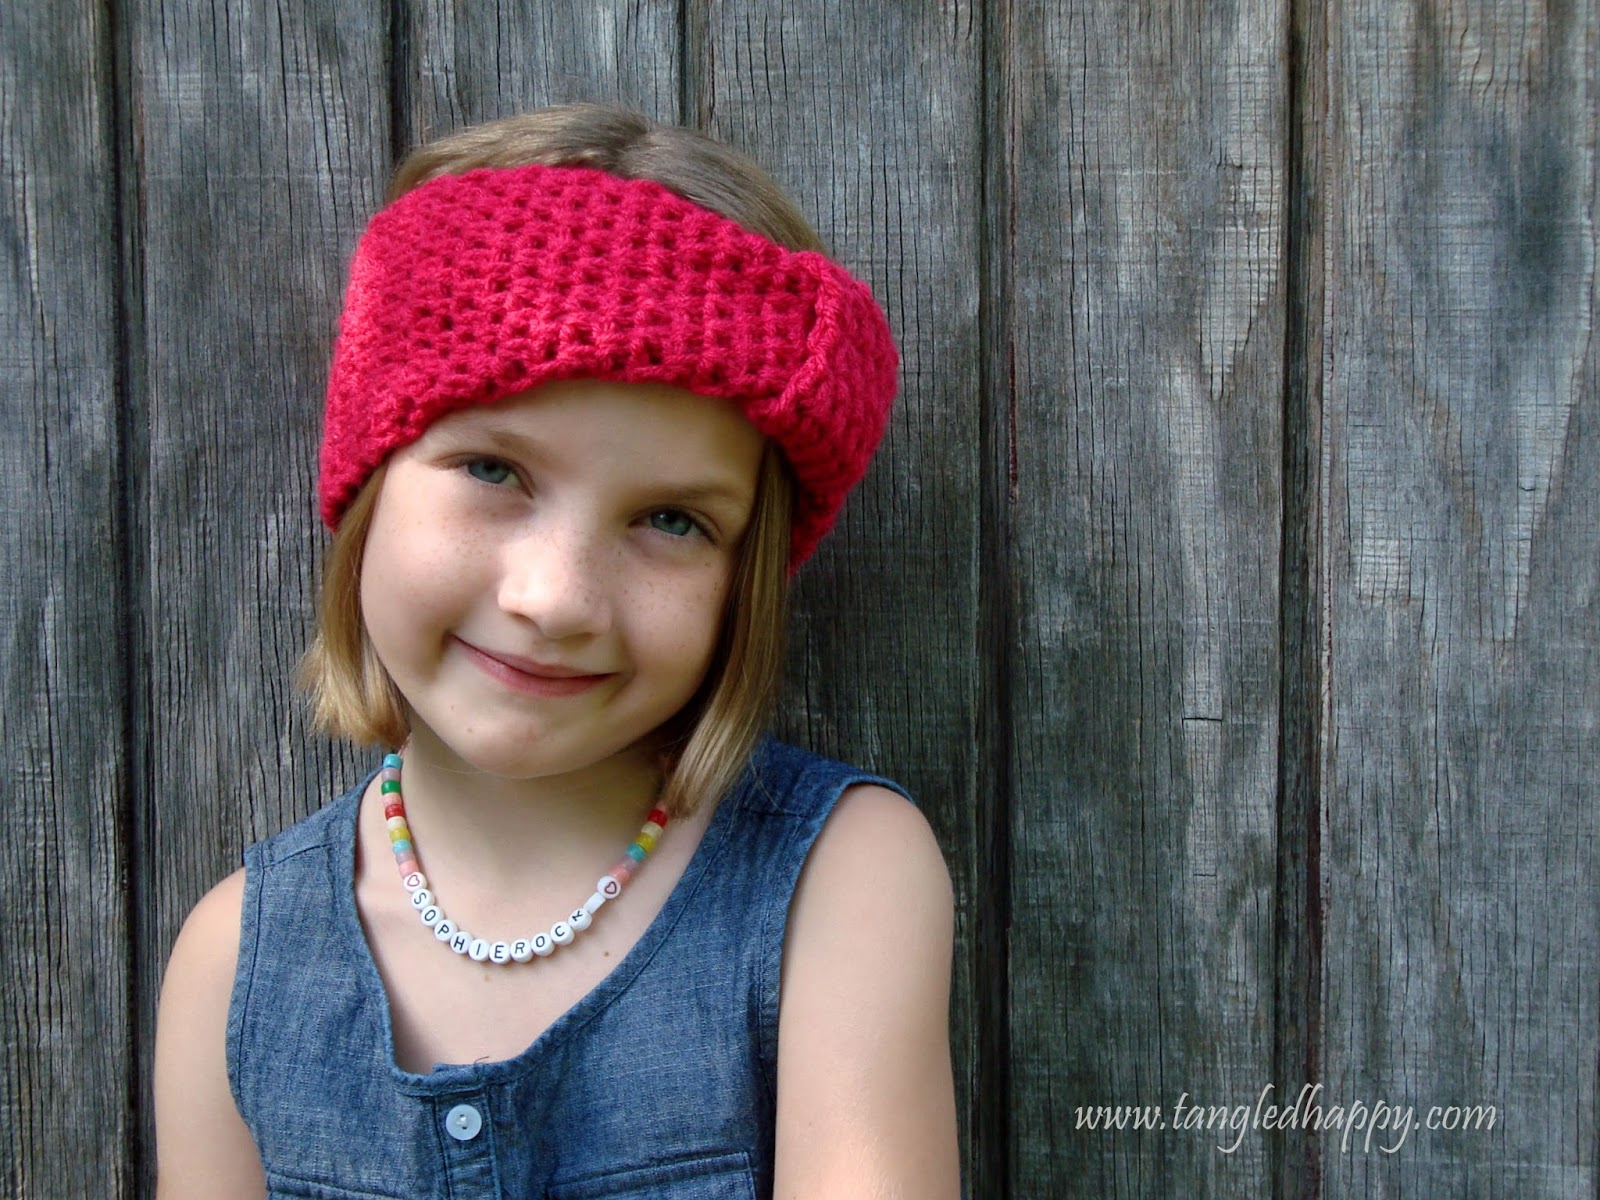 Free Crochet Pattern For Easy Headband : tangled happy: Free Easy Turban Headband Crochet Pattern ...